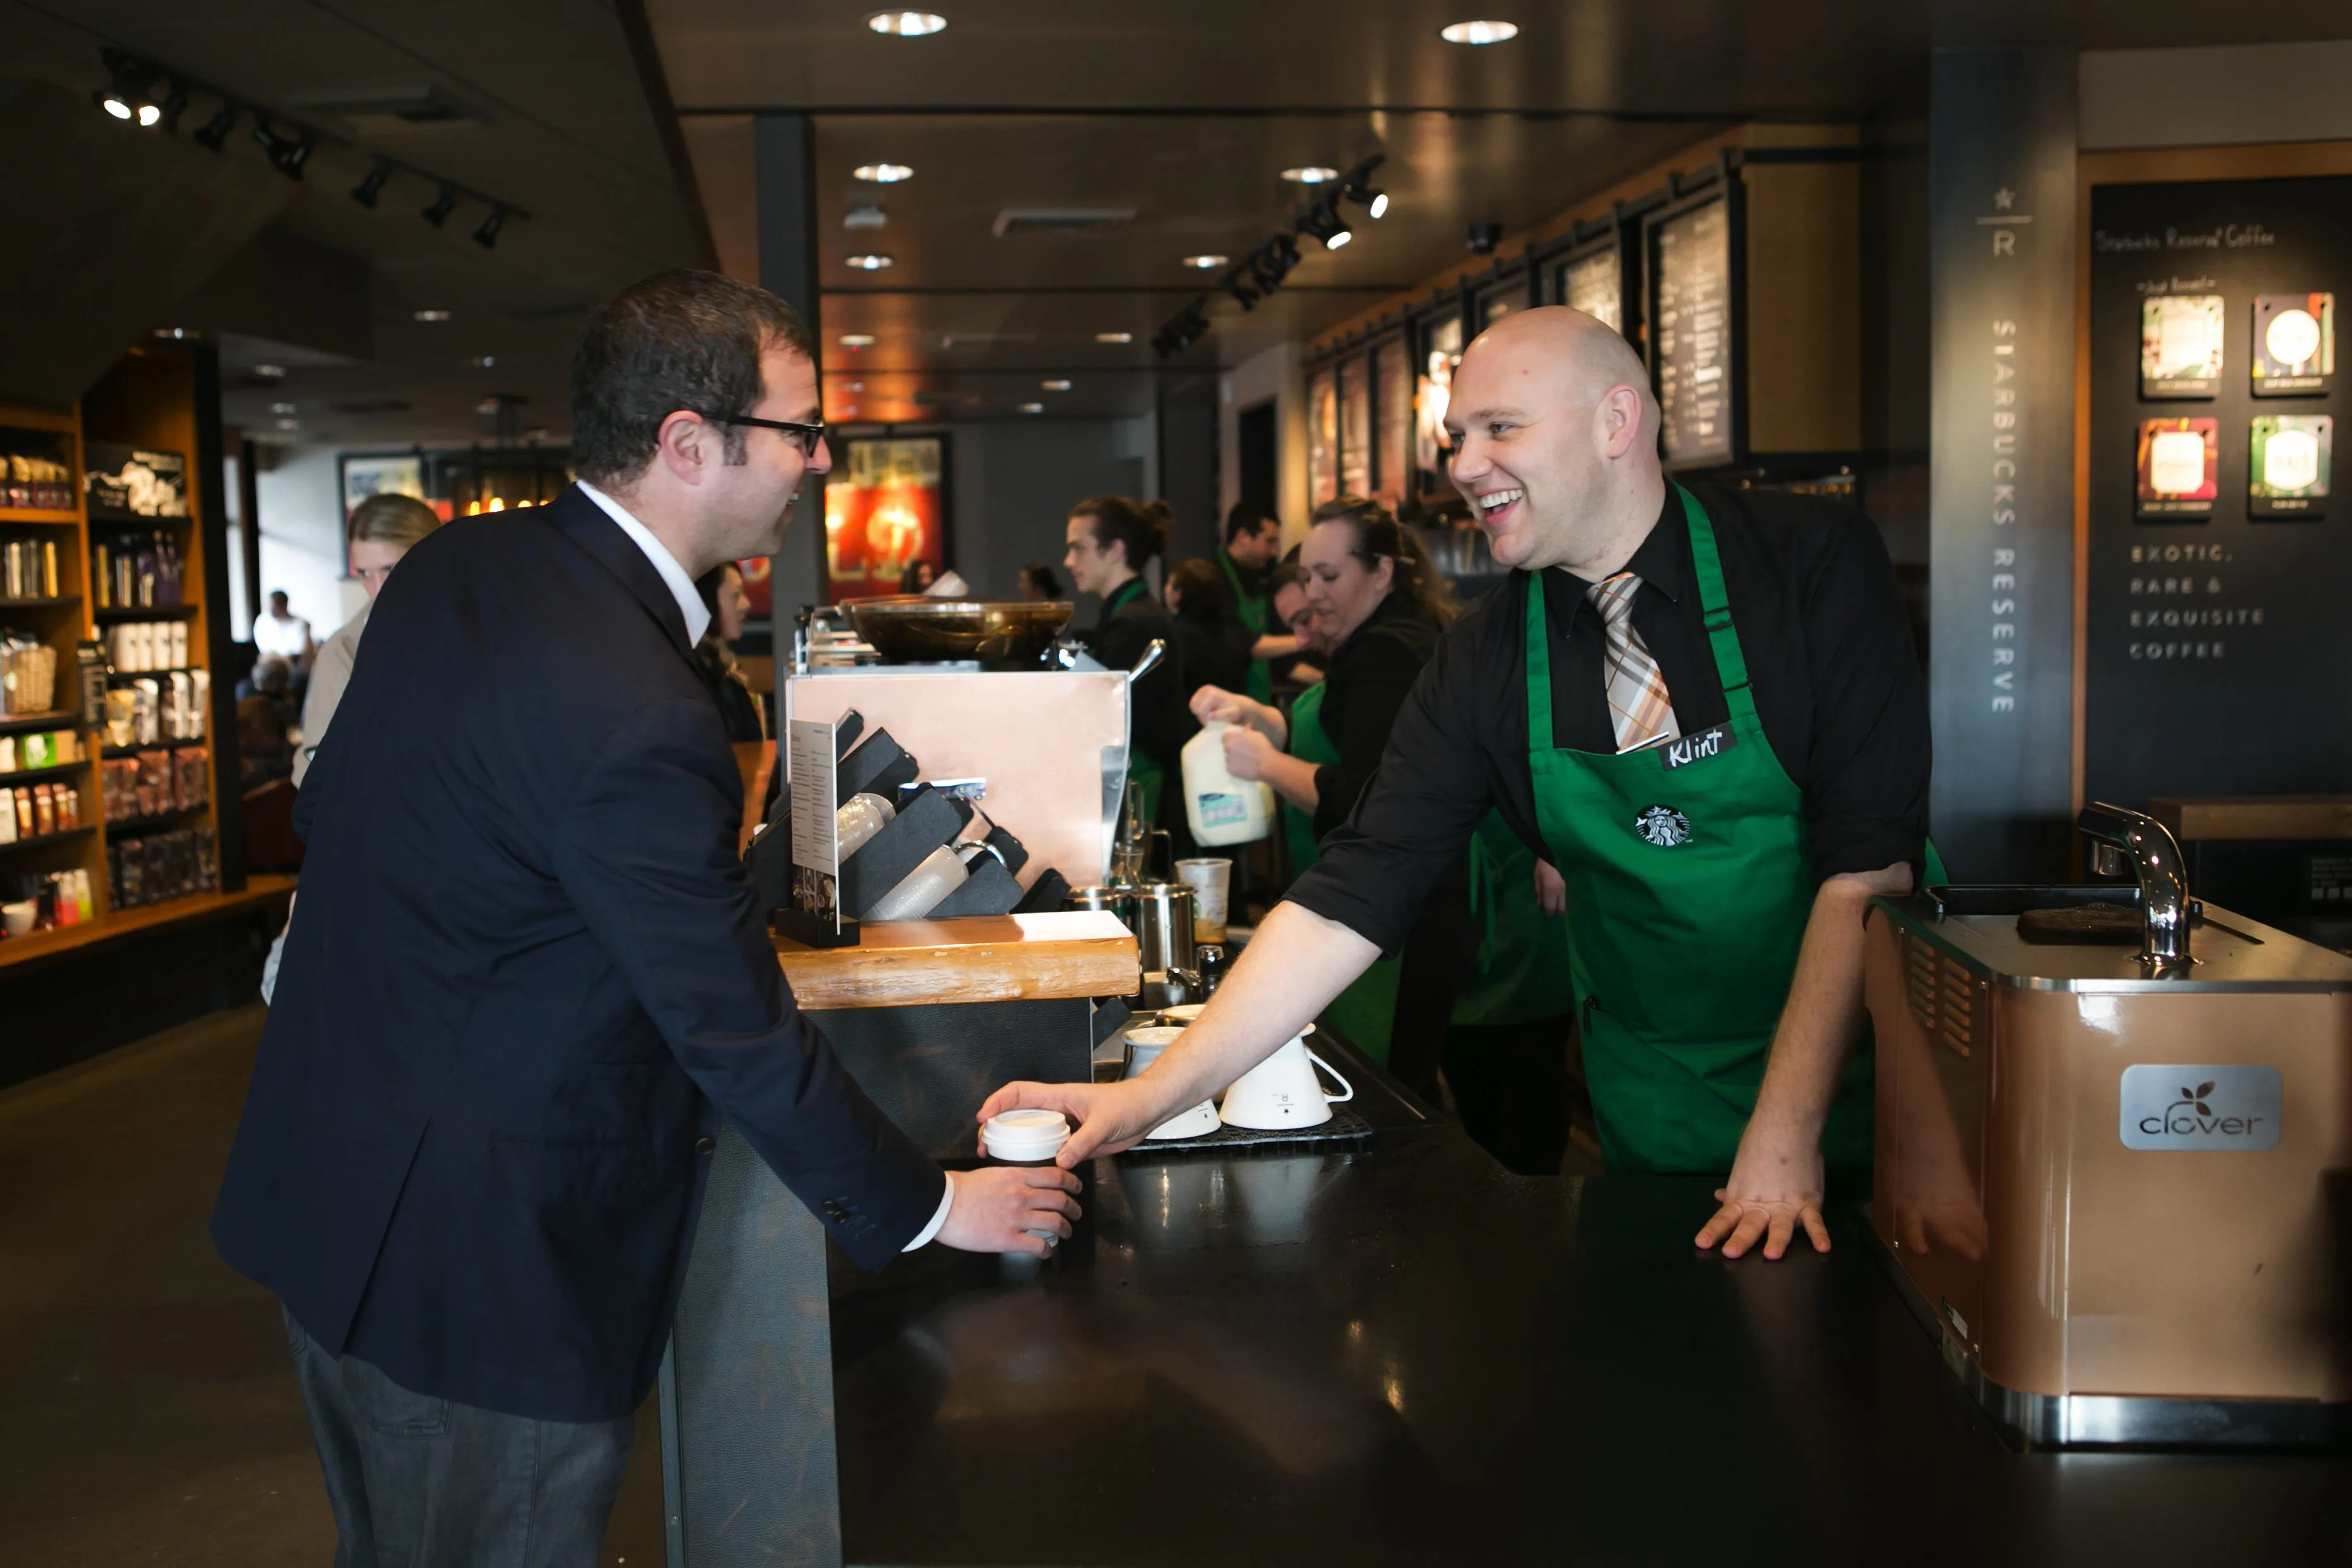 Starbucks readies rollout of mobile ordering in Seattle area The - starbucks store manager